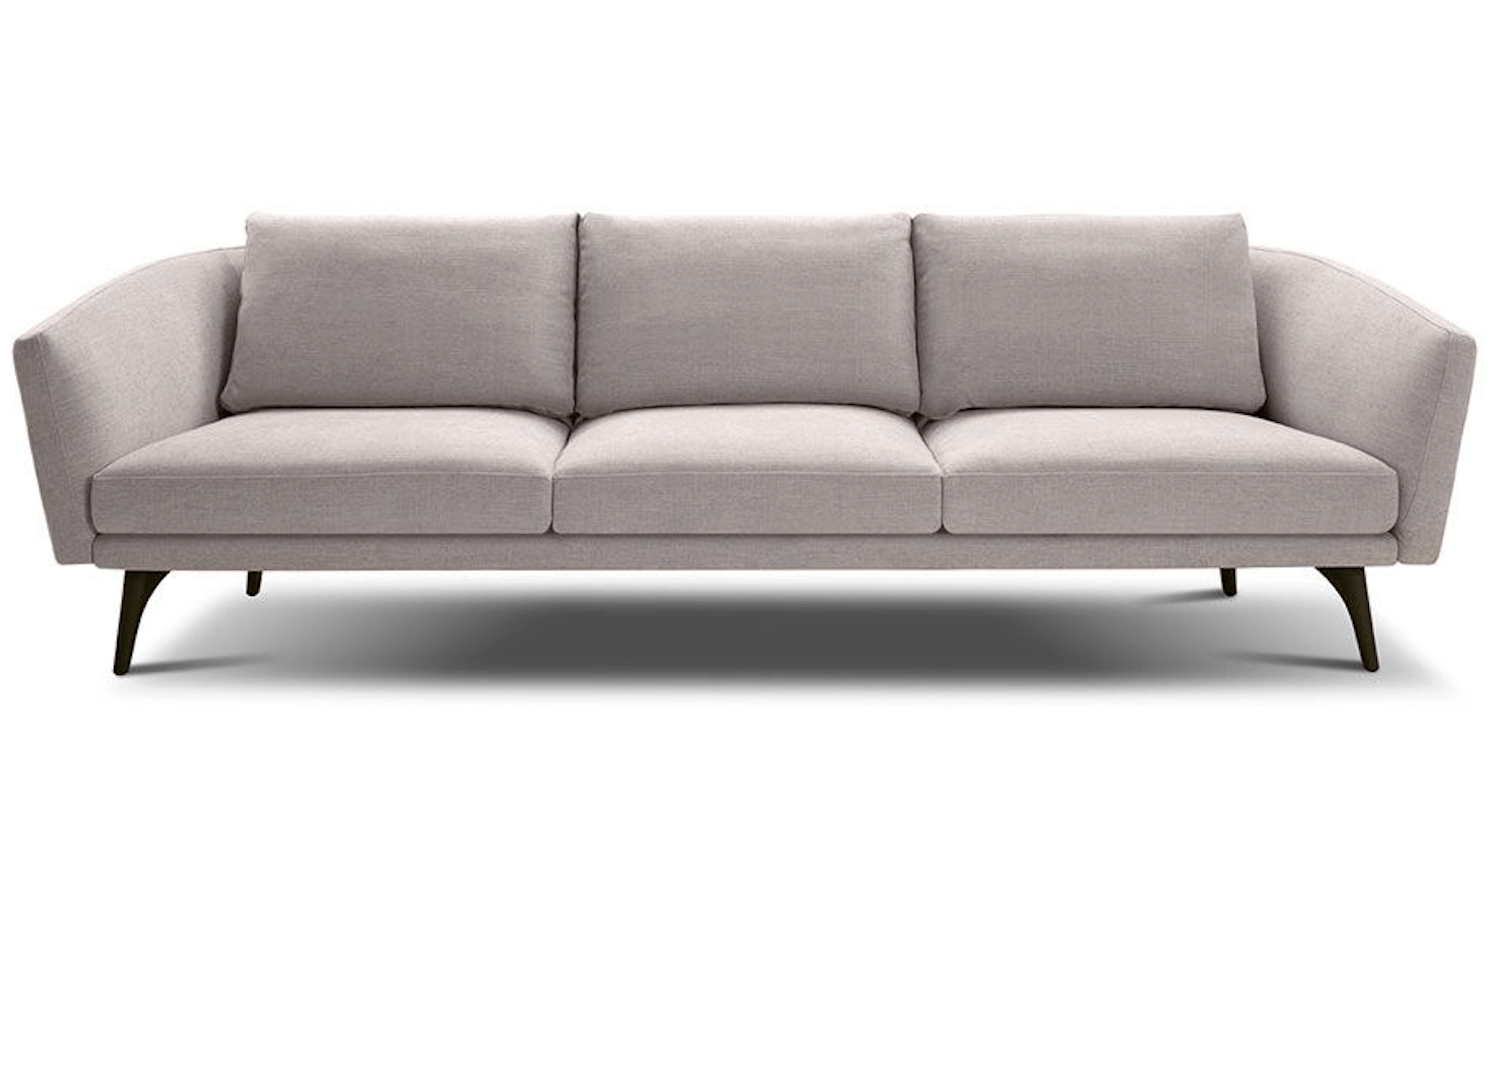 King Boulevard Sofa By King Living Est Living Design Directory